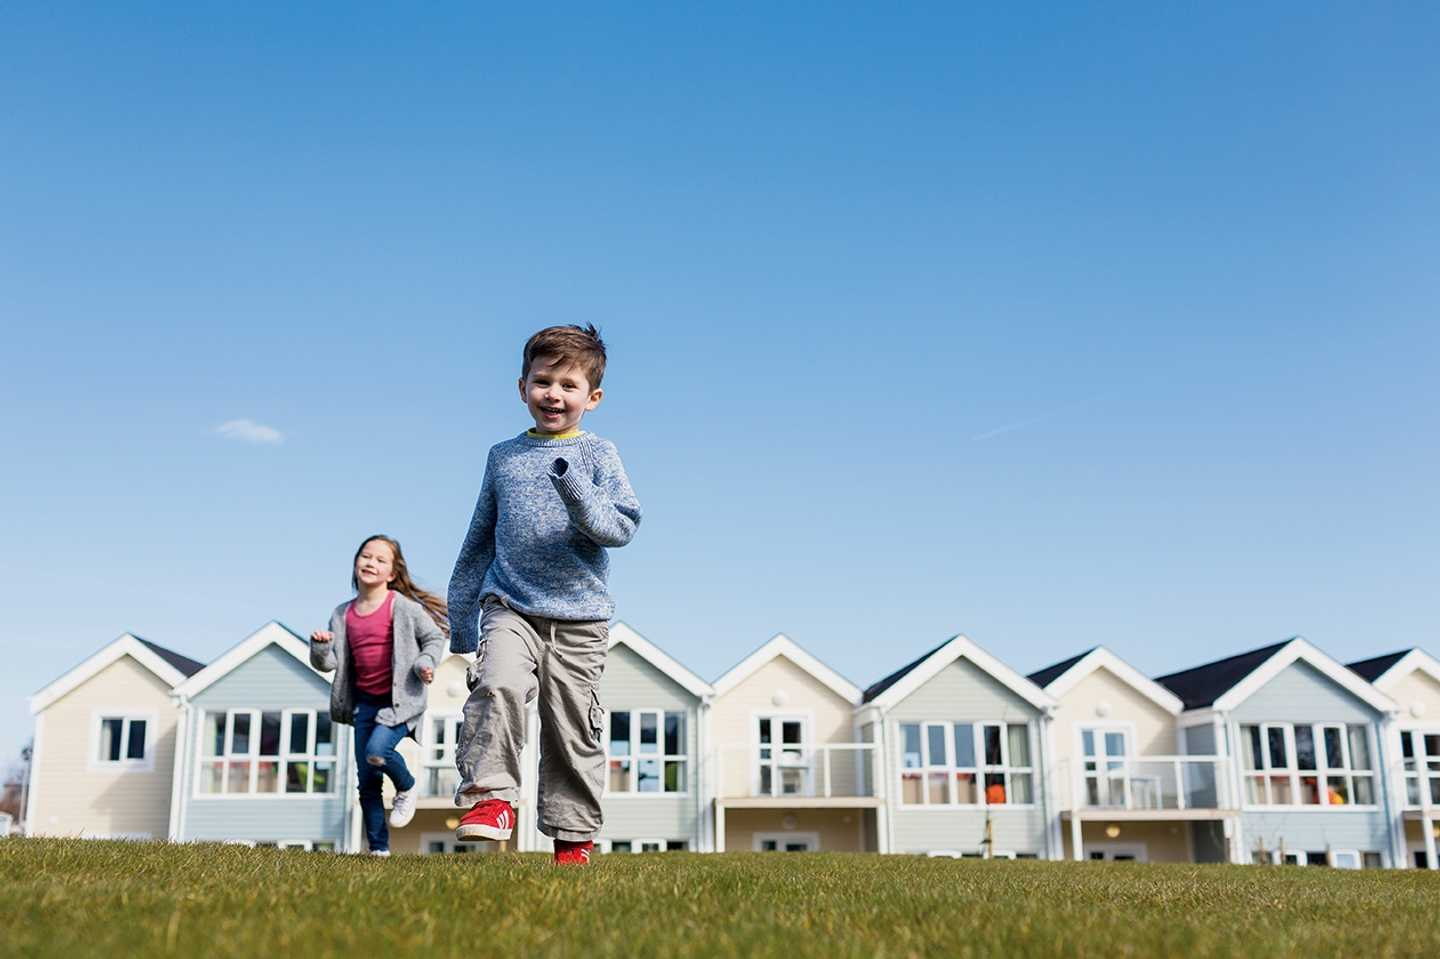 Children playing outside the stylish deck houses